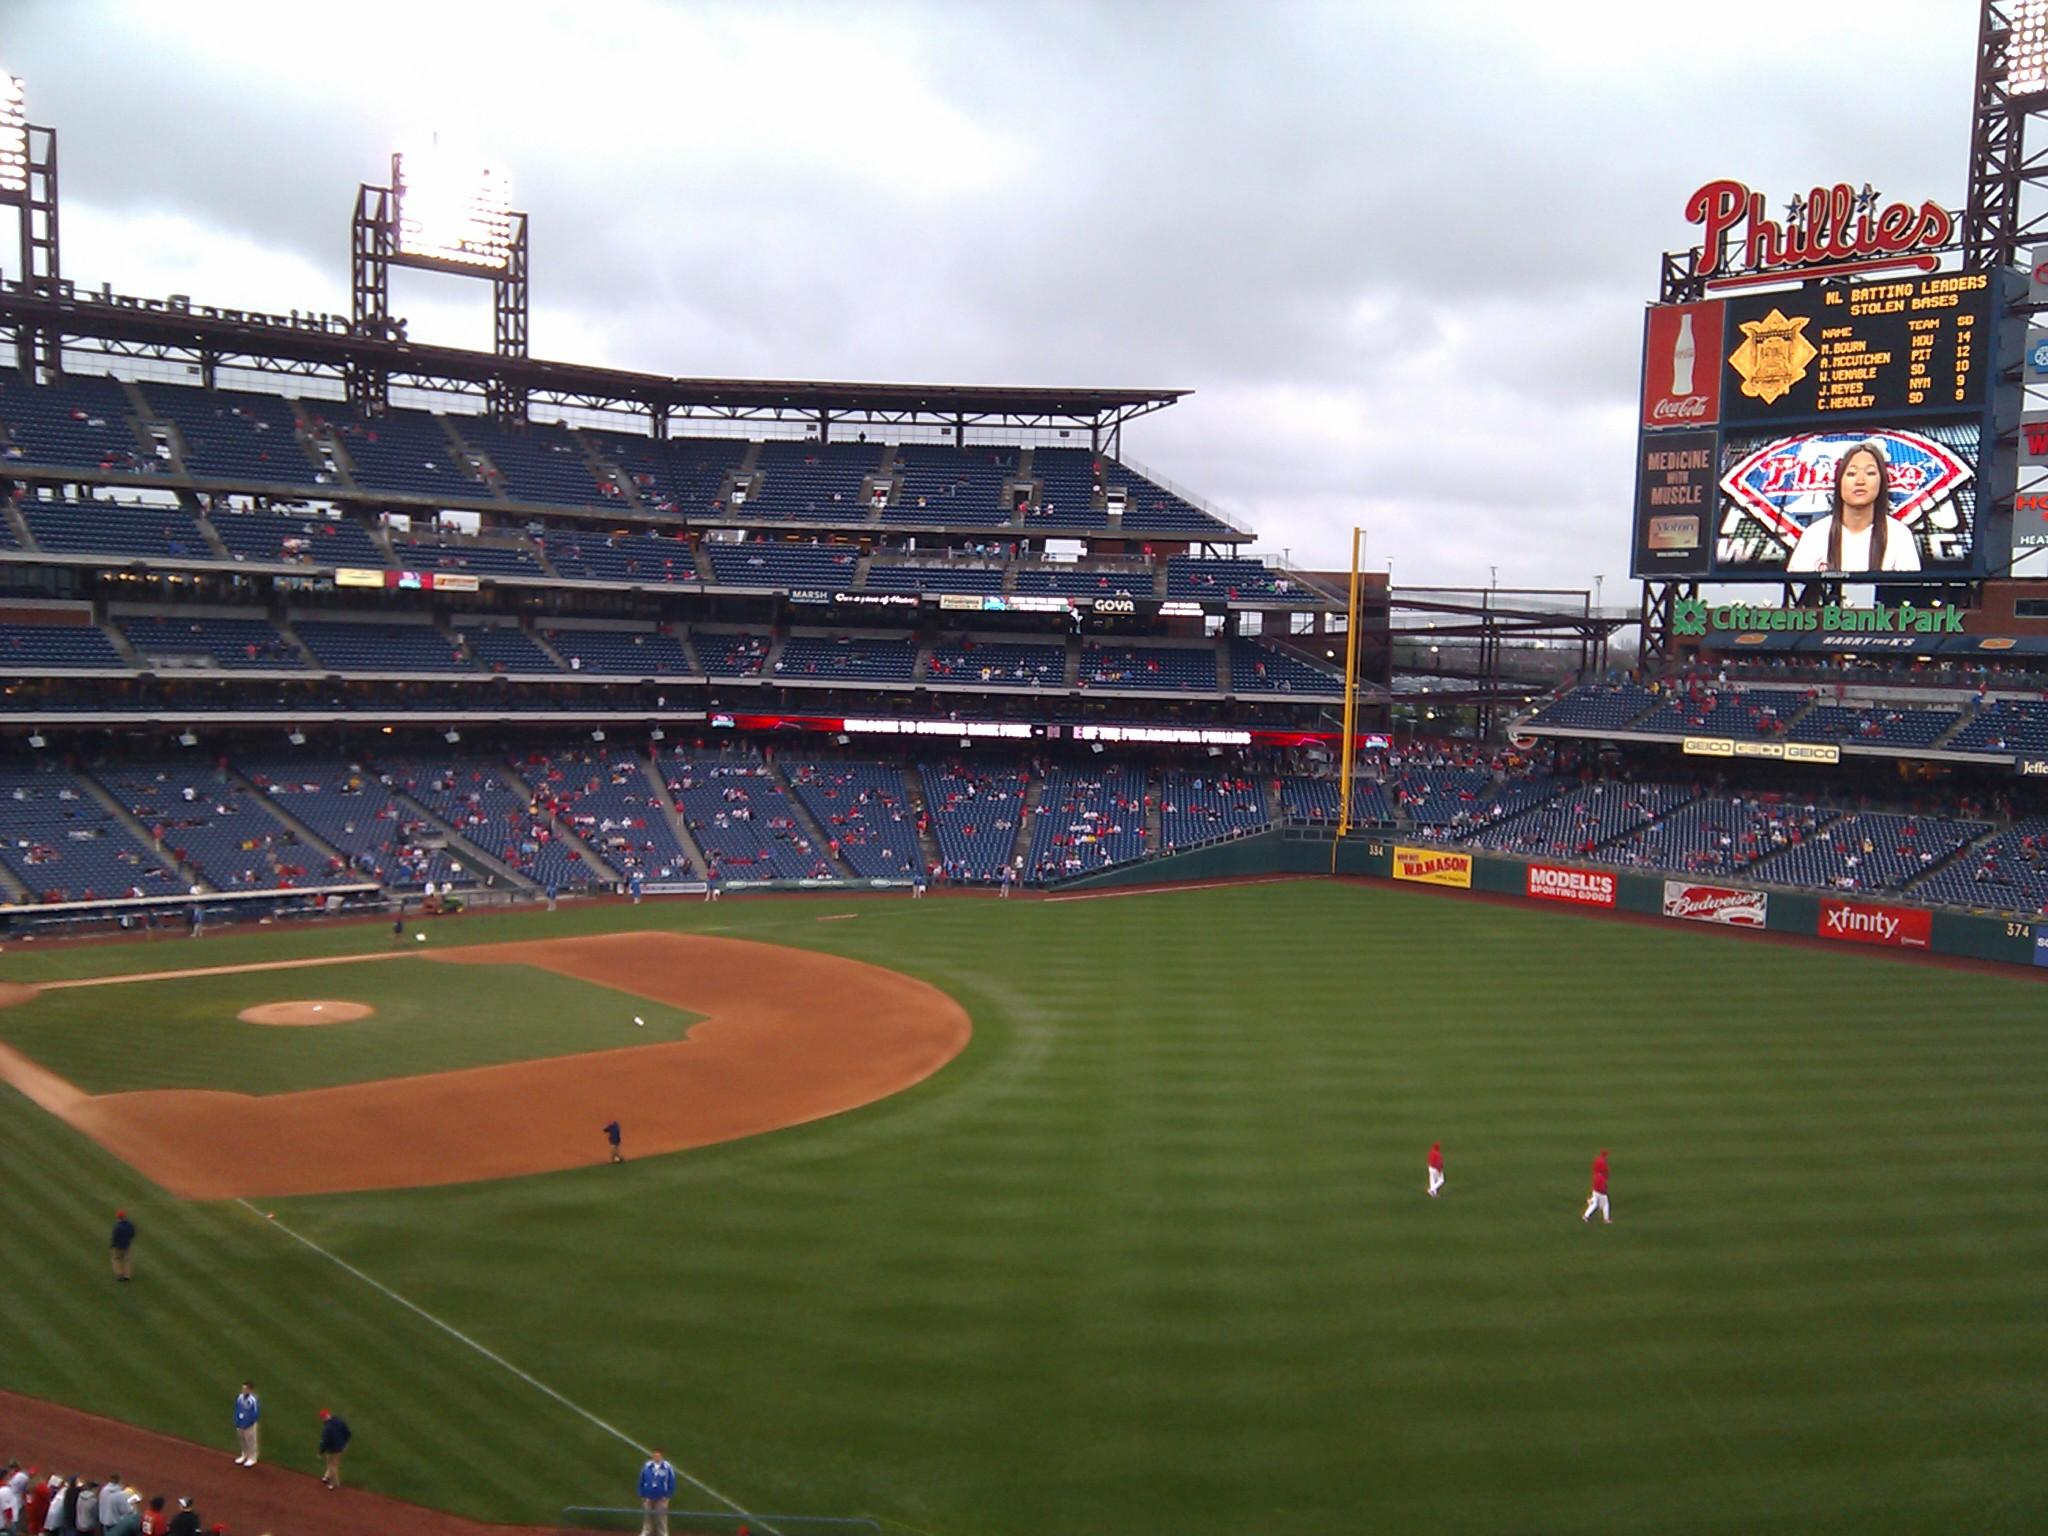 Citizens Bank Park Section 207 Row 10 Seat 23